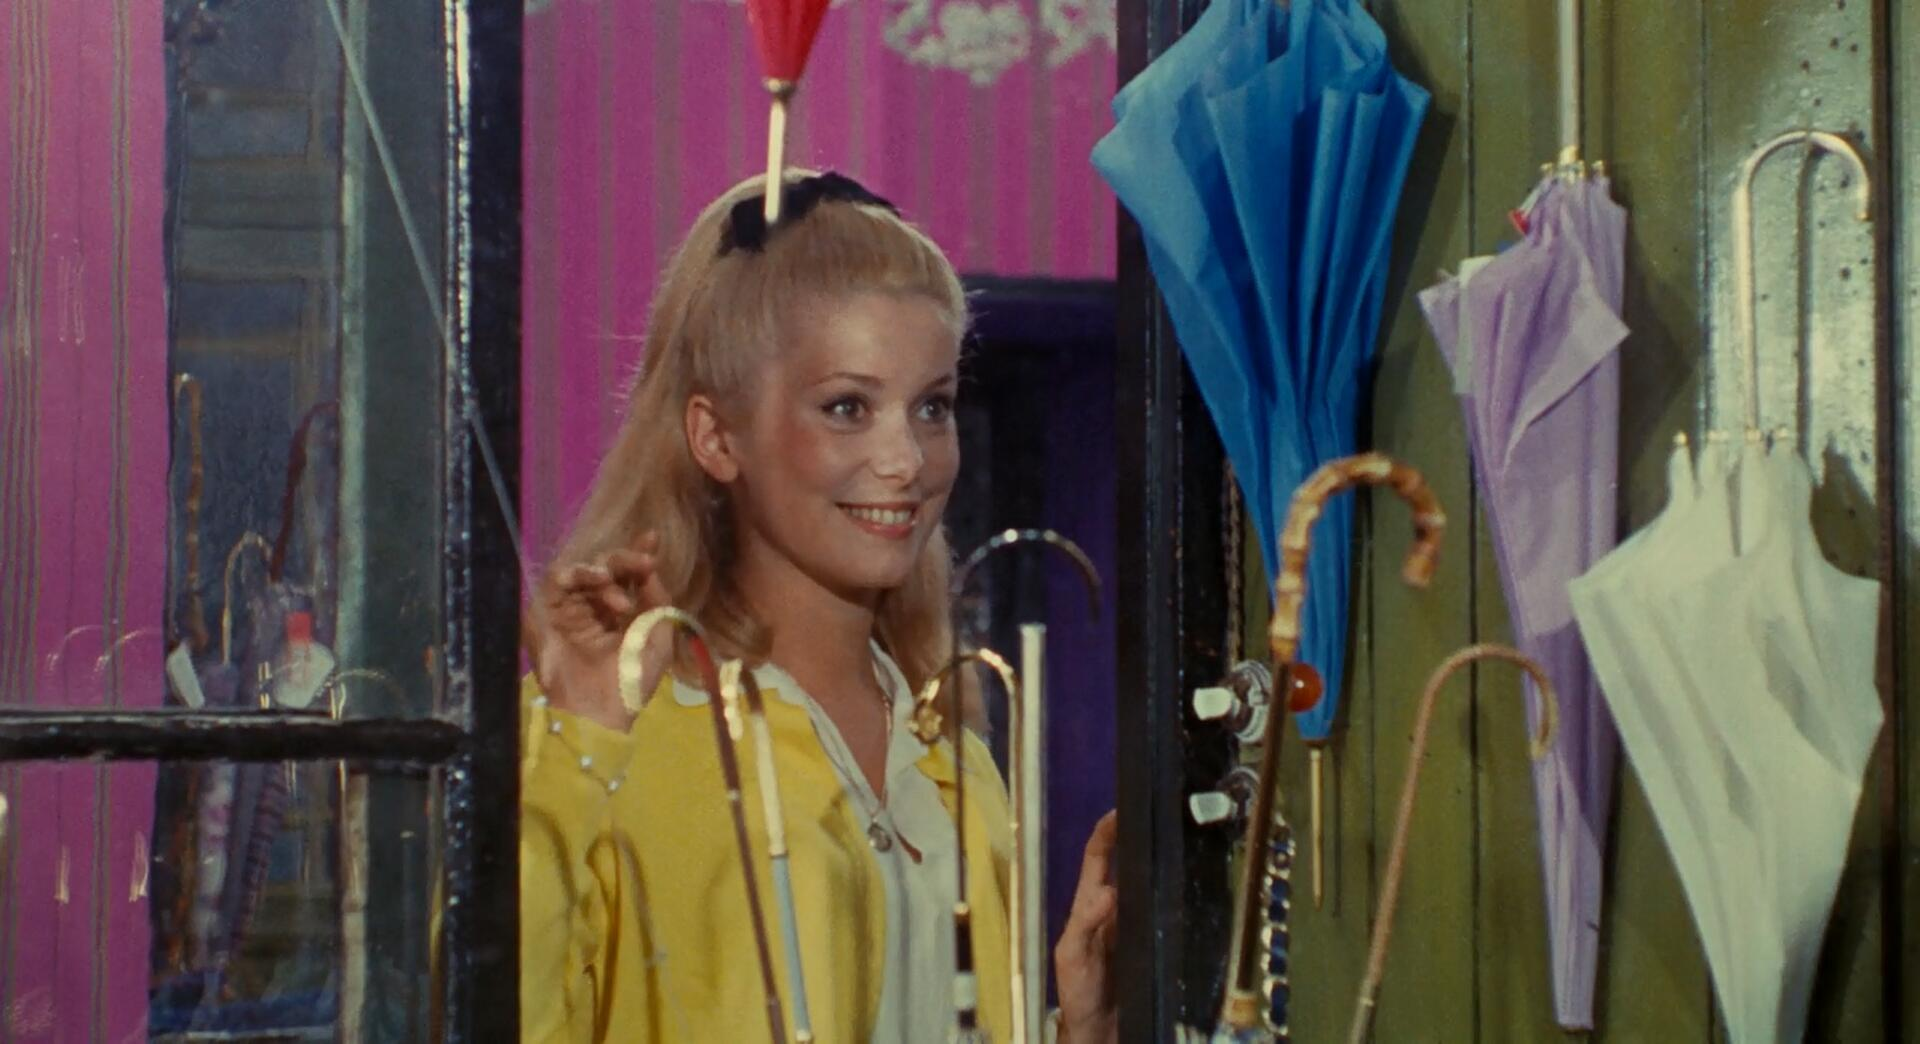 The-Umbrellas-of-Cherbourg-2